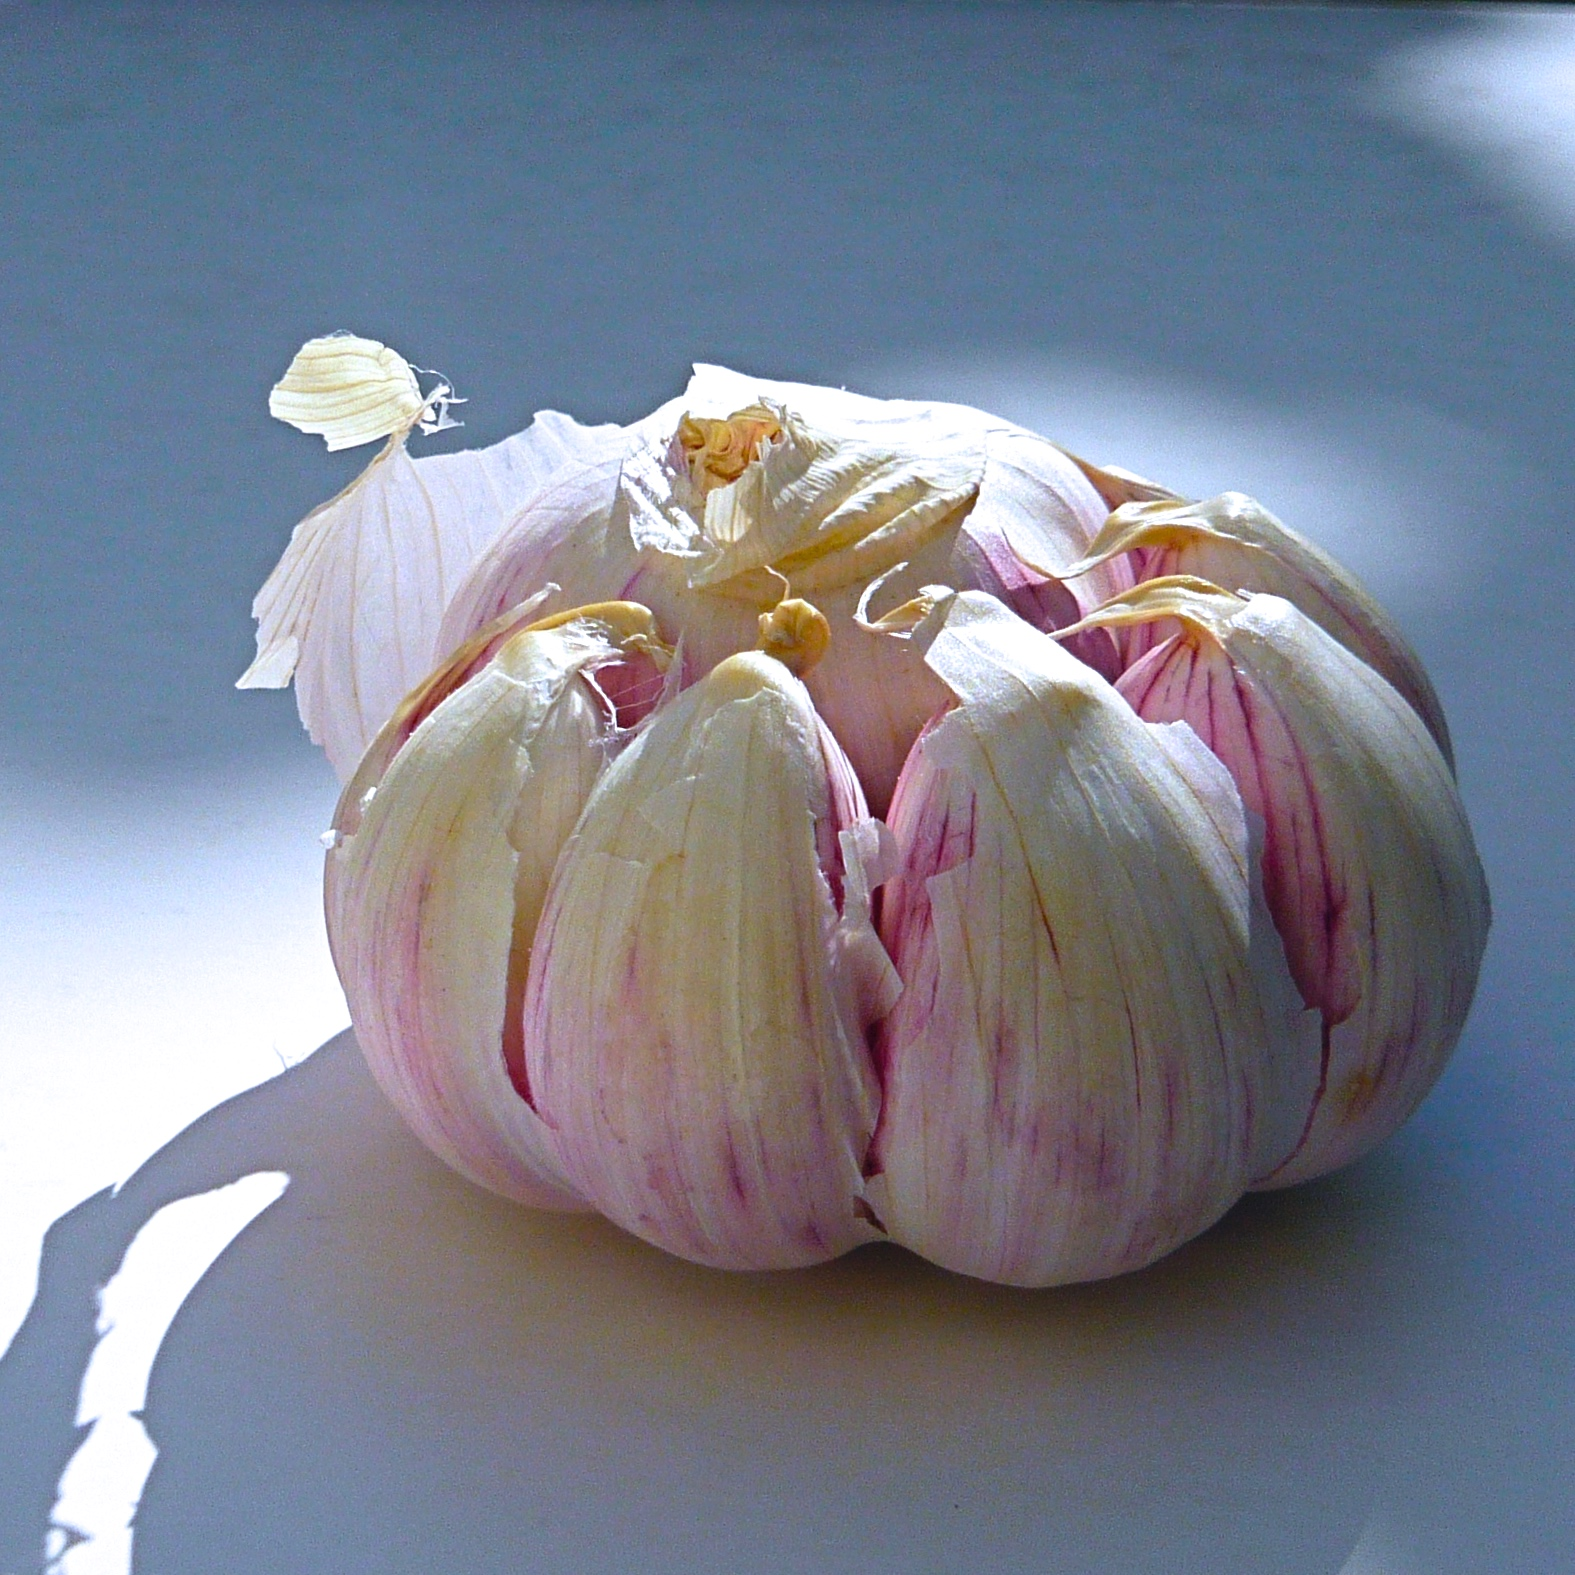 Momma garlic and her little babies. Photographe : Anne-Marie Bouyssou.